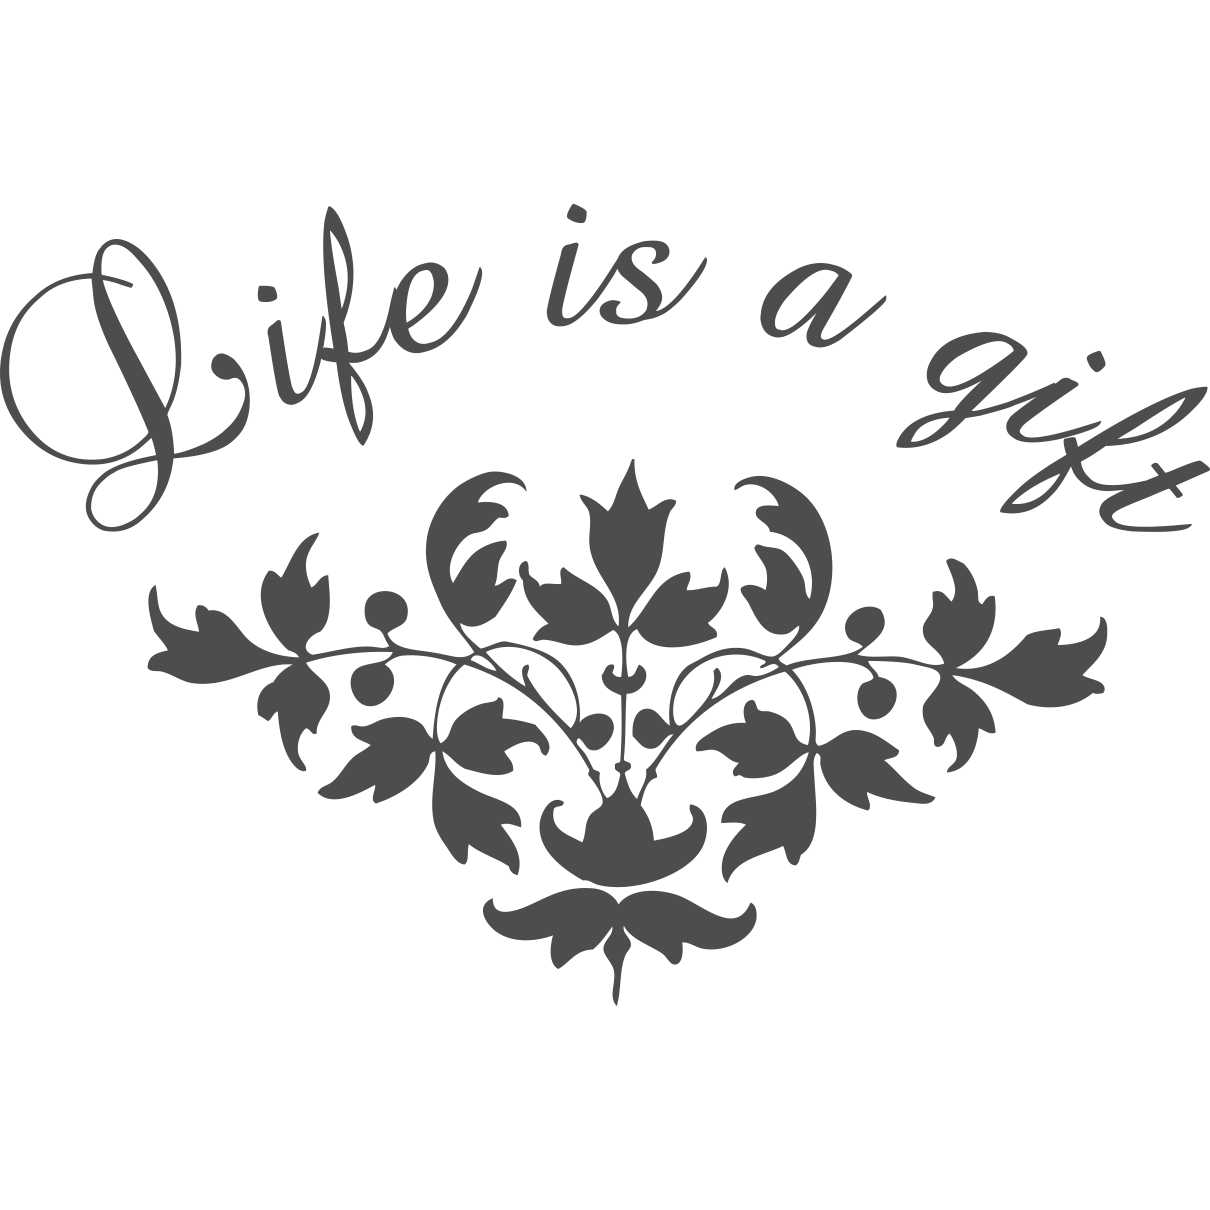 Sticker perete Life is a gift 2